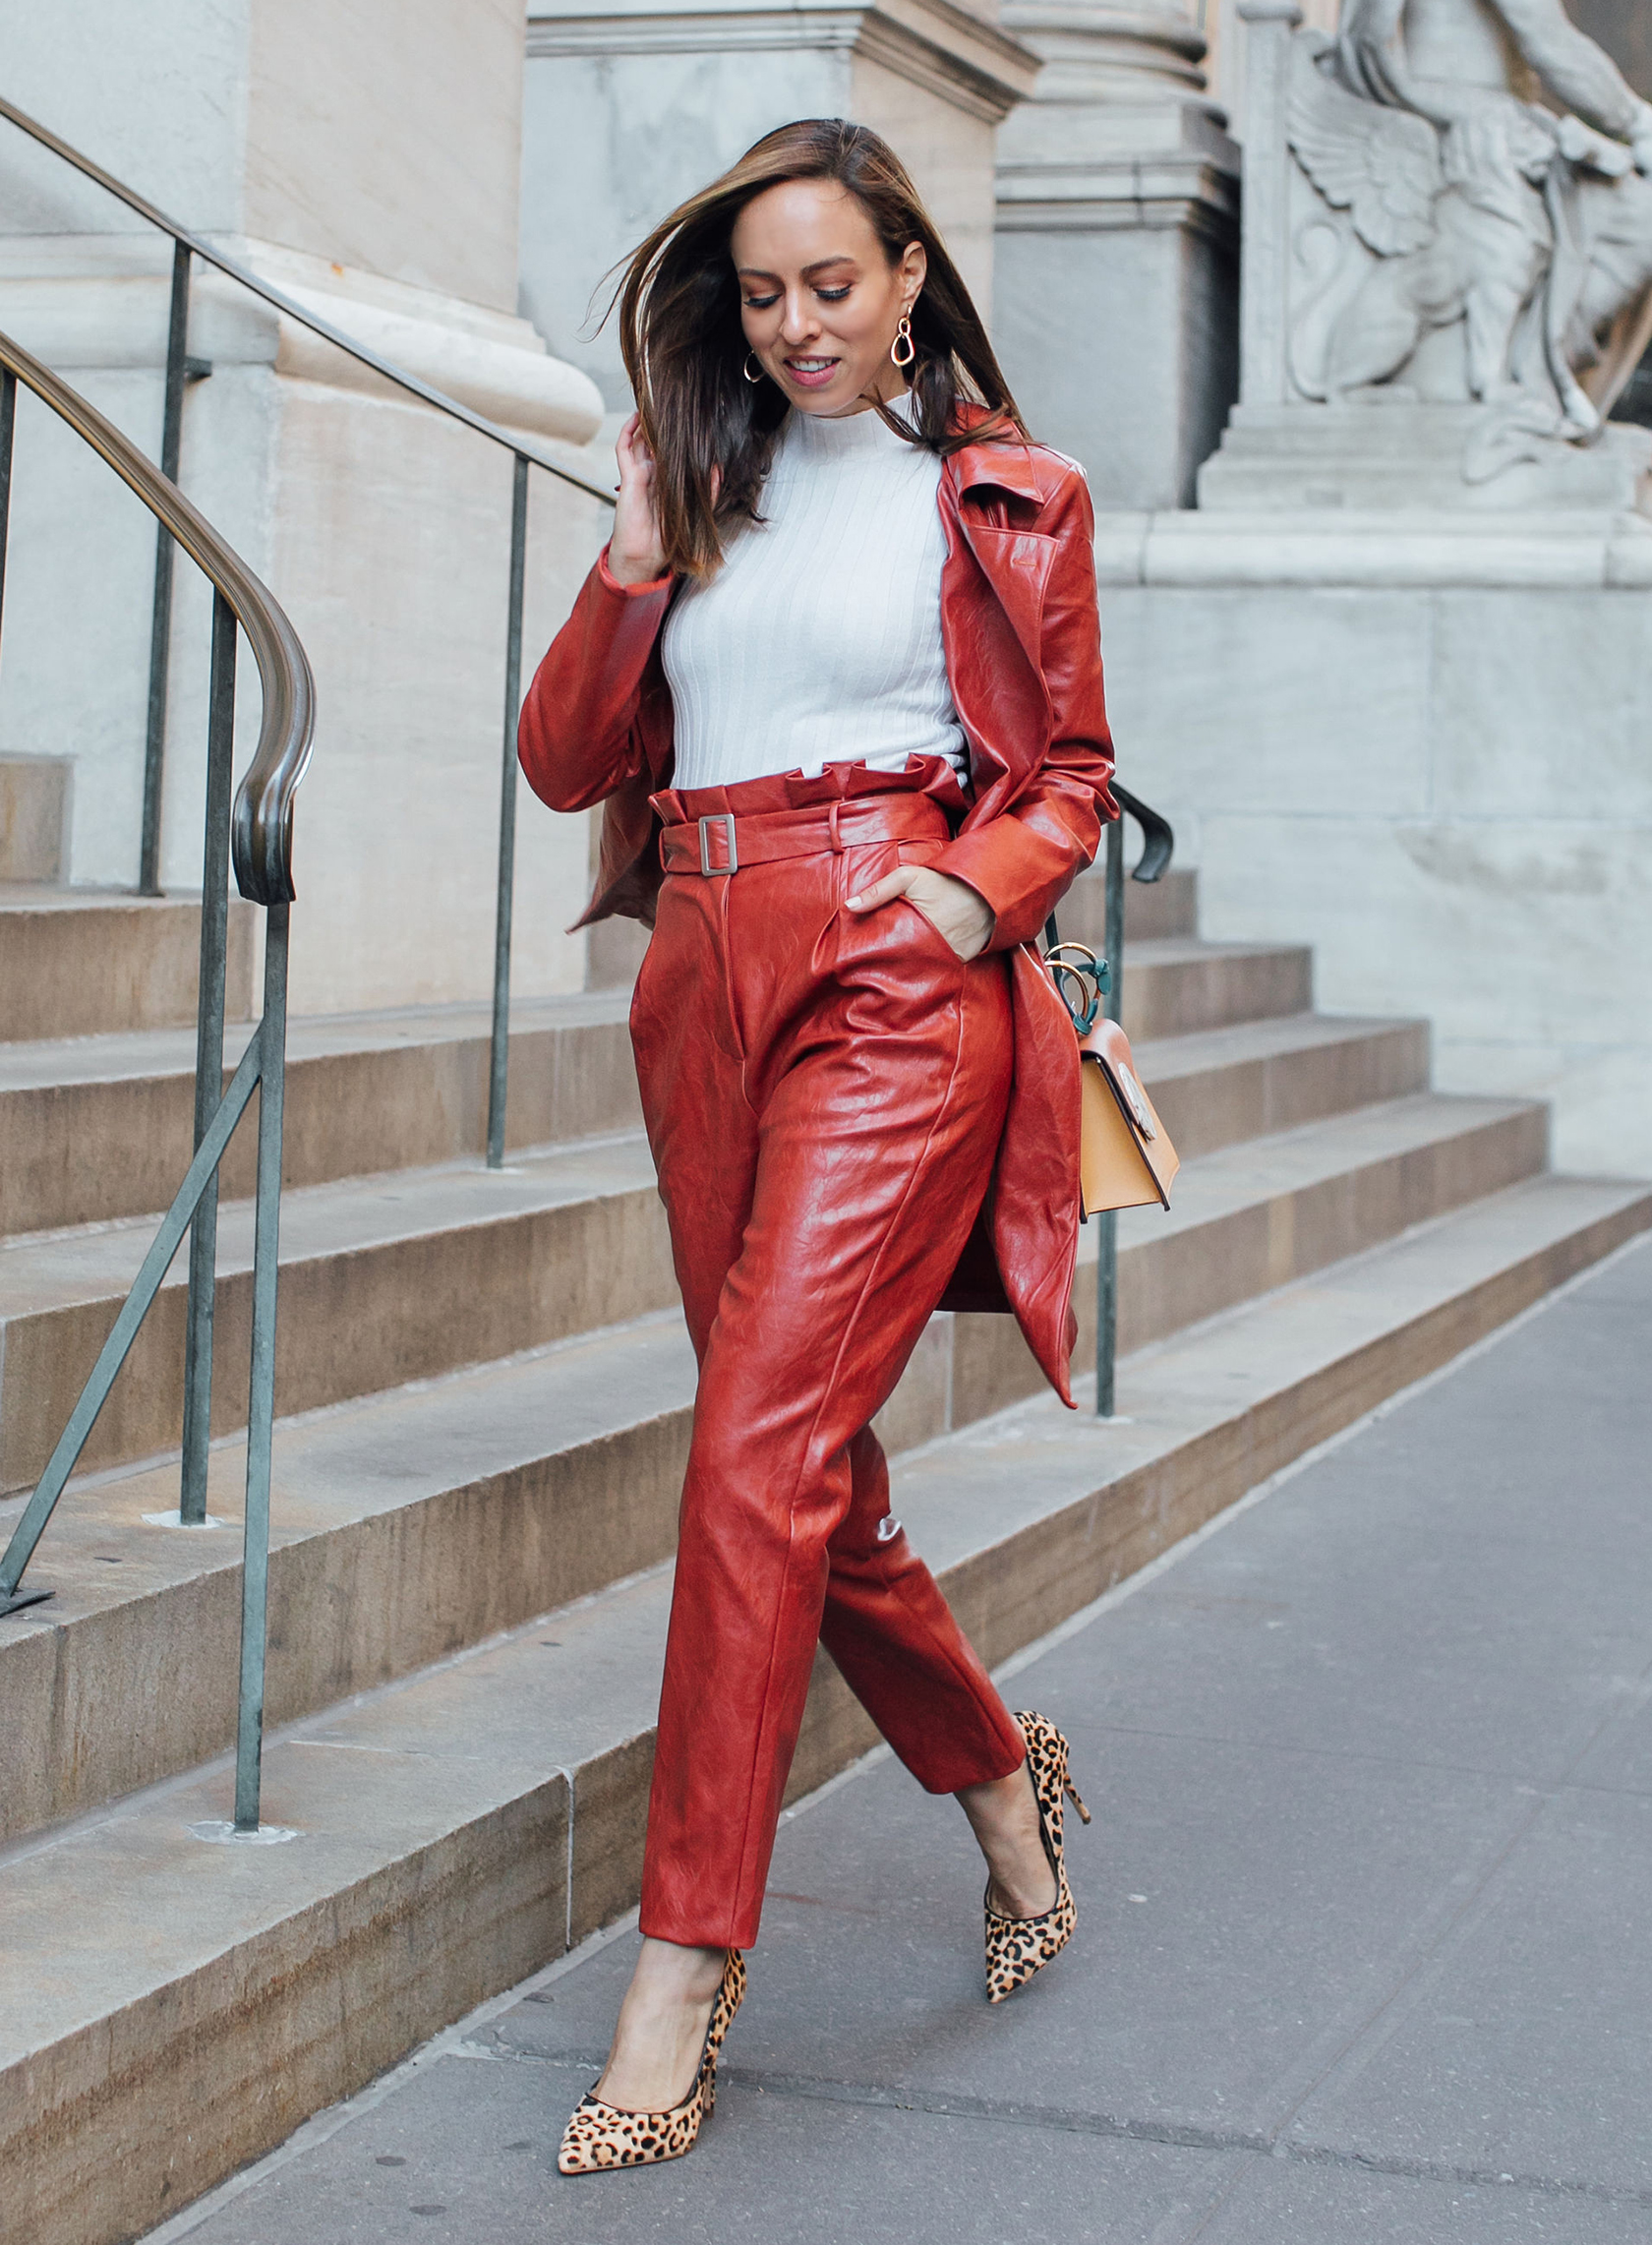 Sydne Style shows how to wear colored leather for fall in majorelle pants and leopard shoes